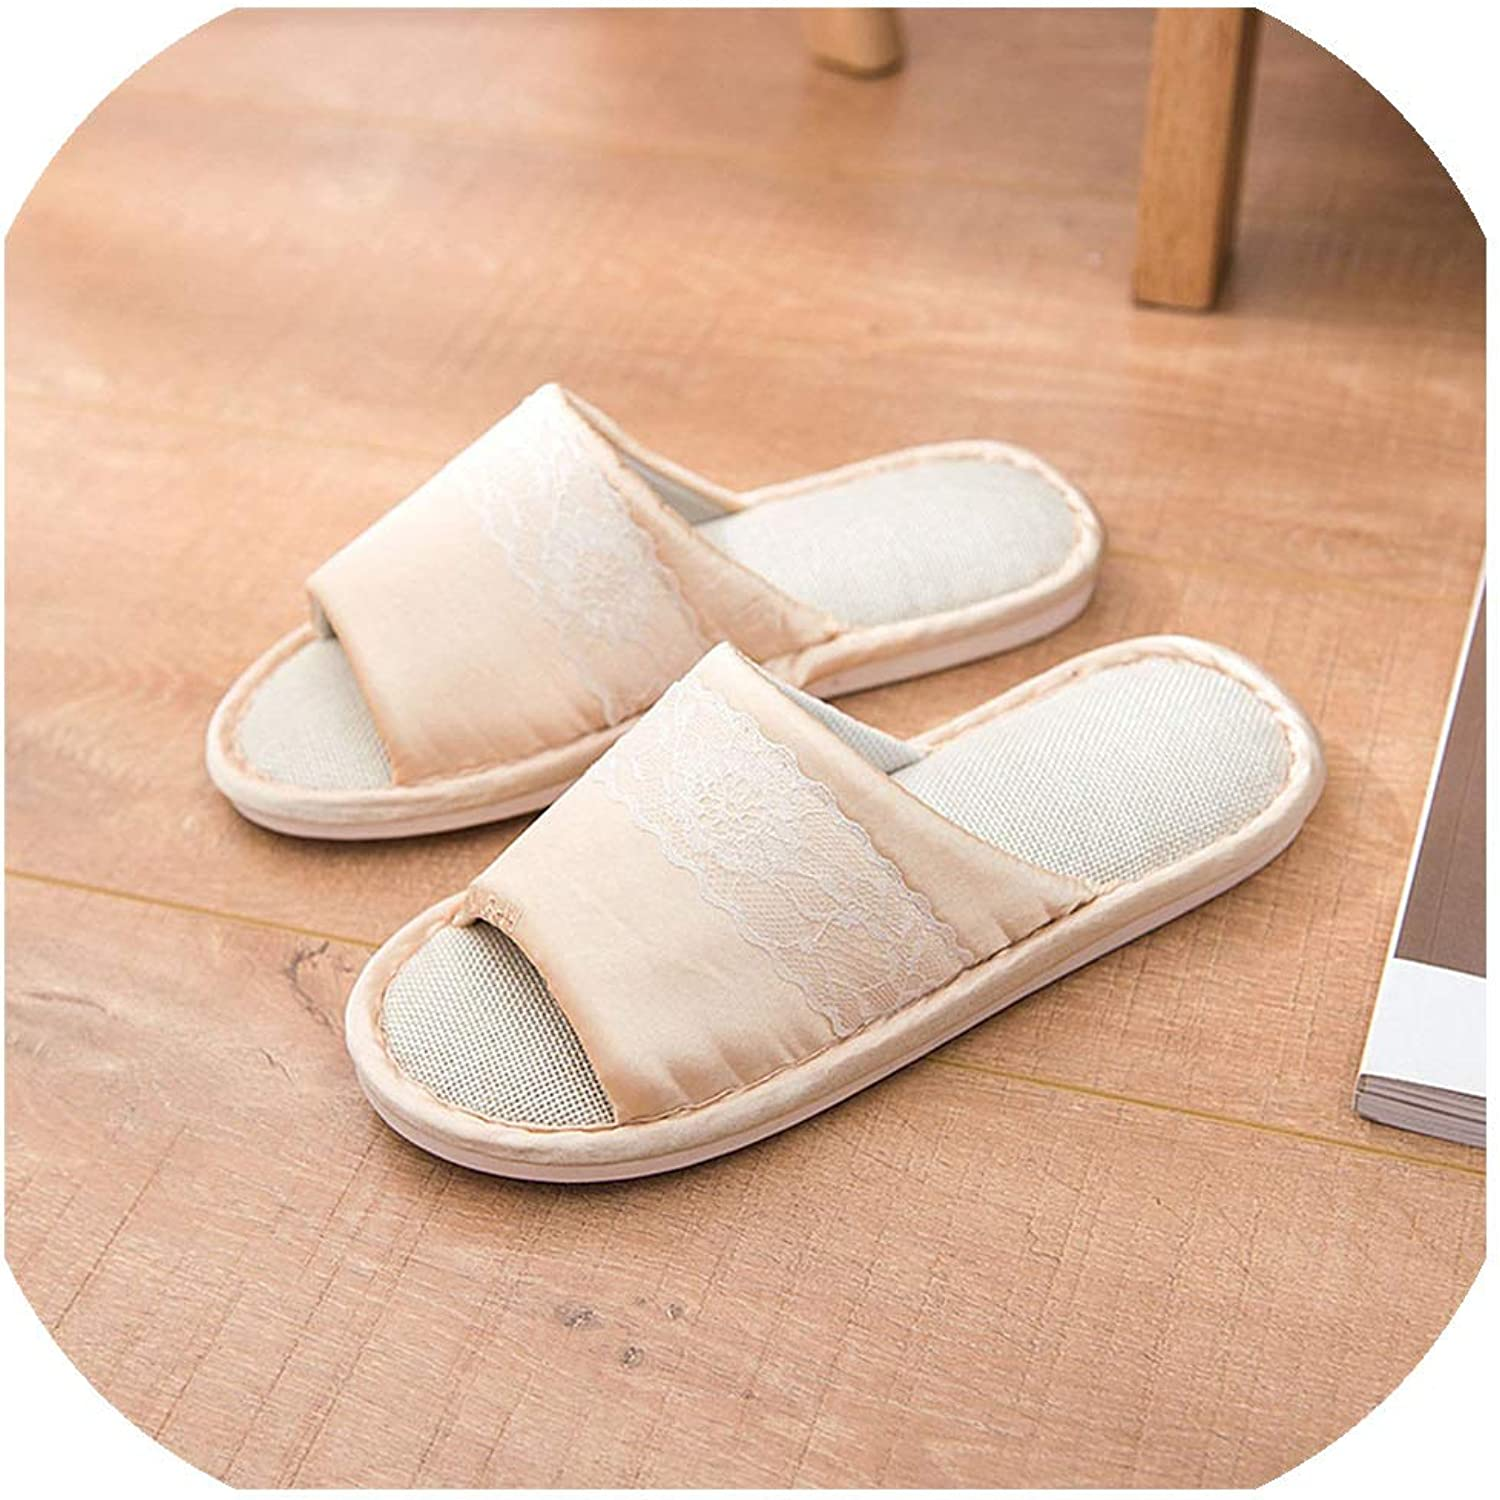 Women Spring Home Slippers Indoor Flat shoes Female Casual Slides Comfortable Floor Slippe,